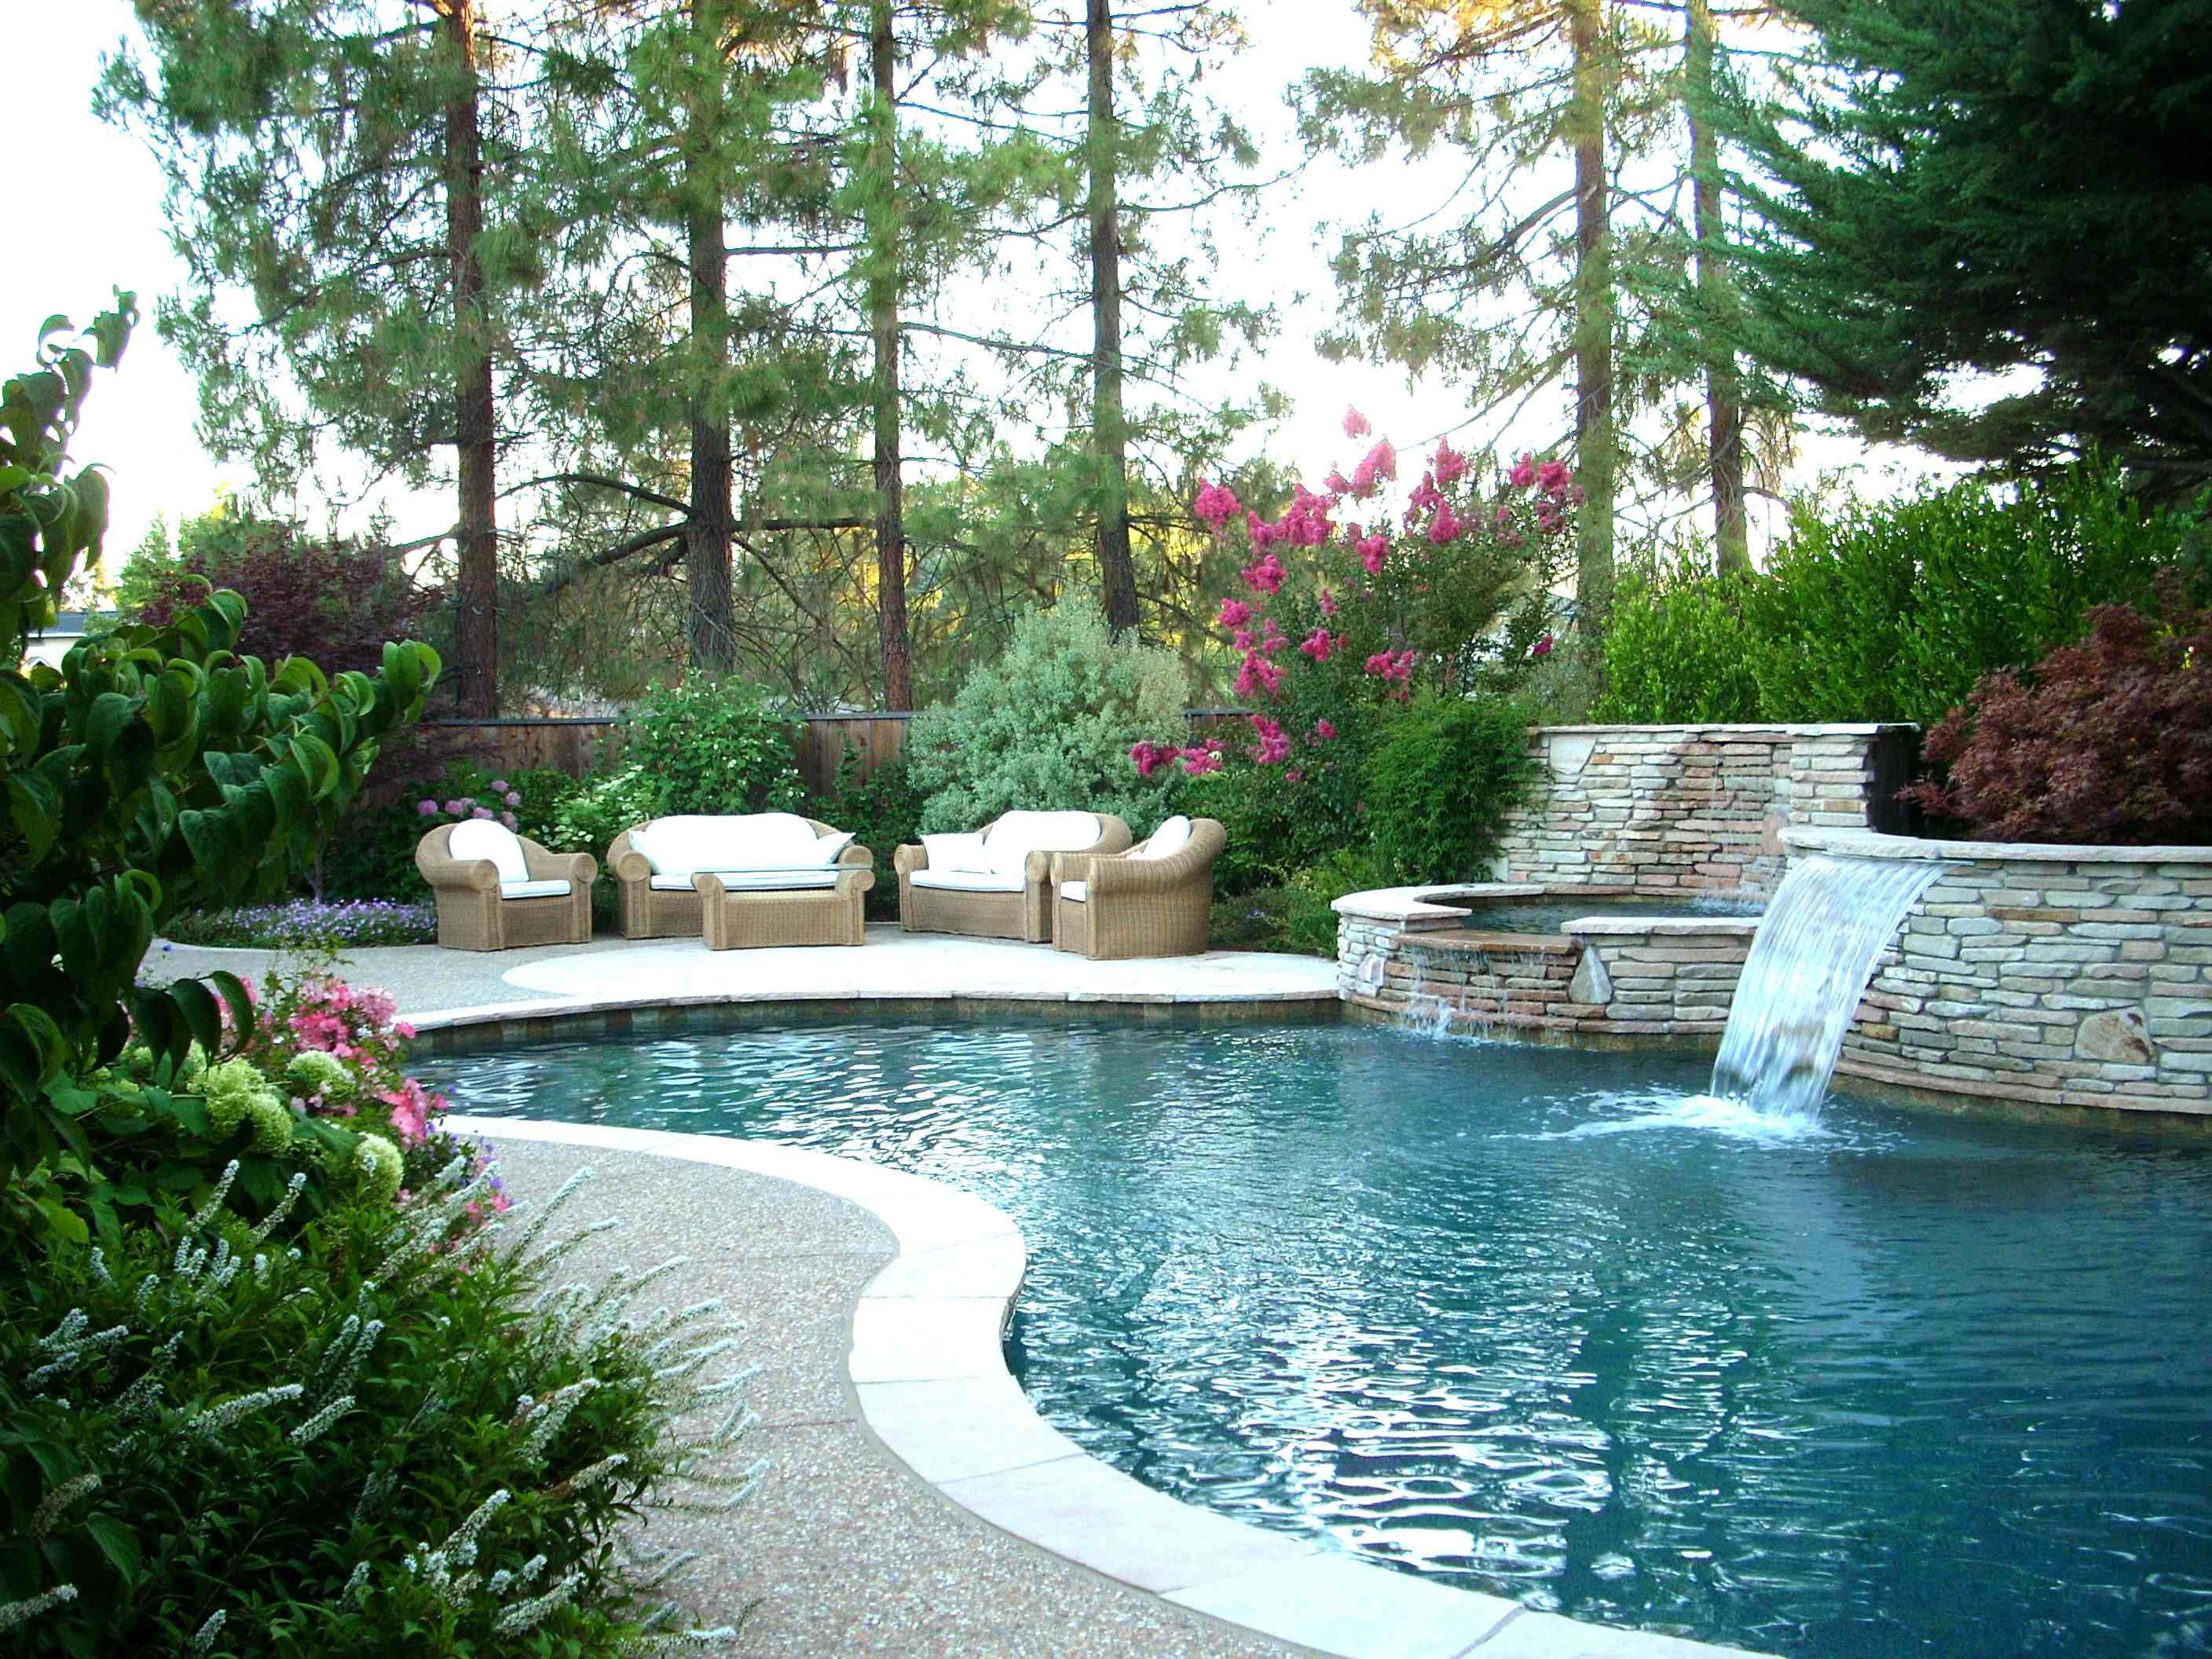 Backyard pool landscaping ideas homesfeed for Outdoor garden ideas house